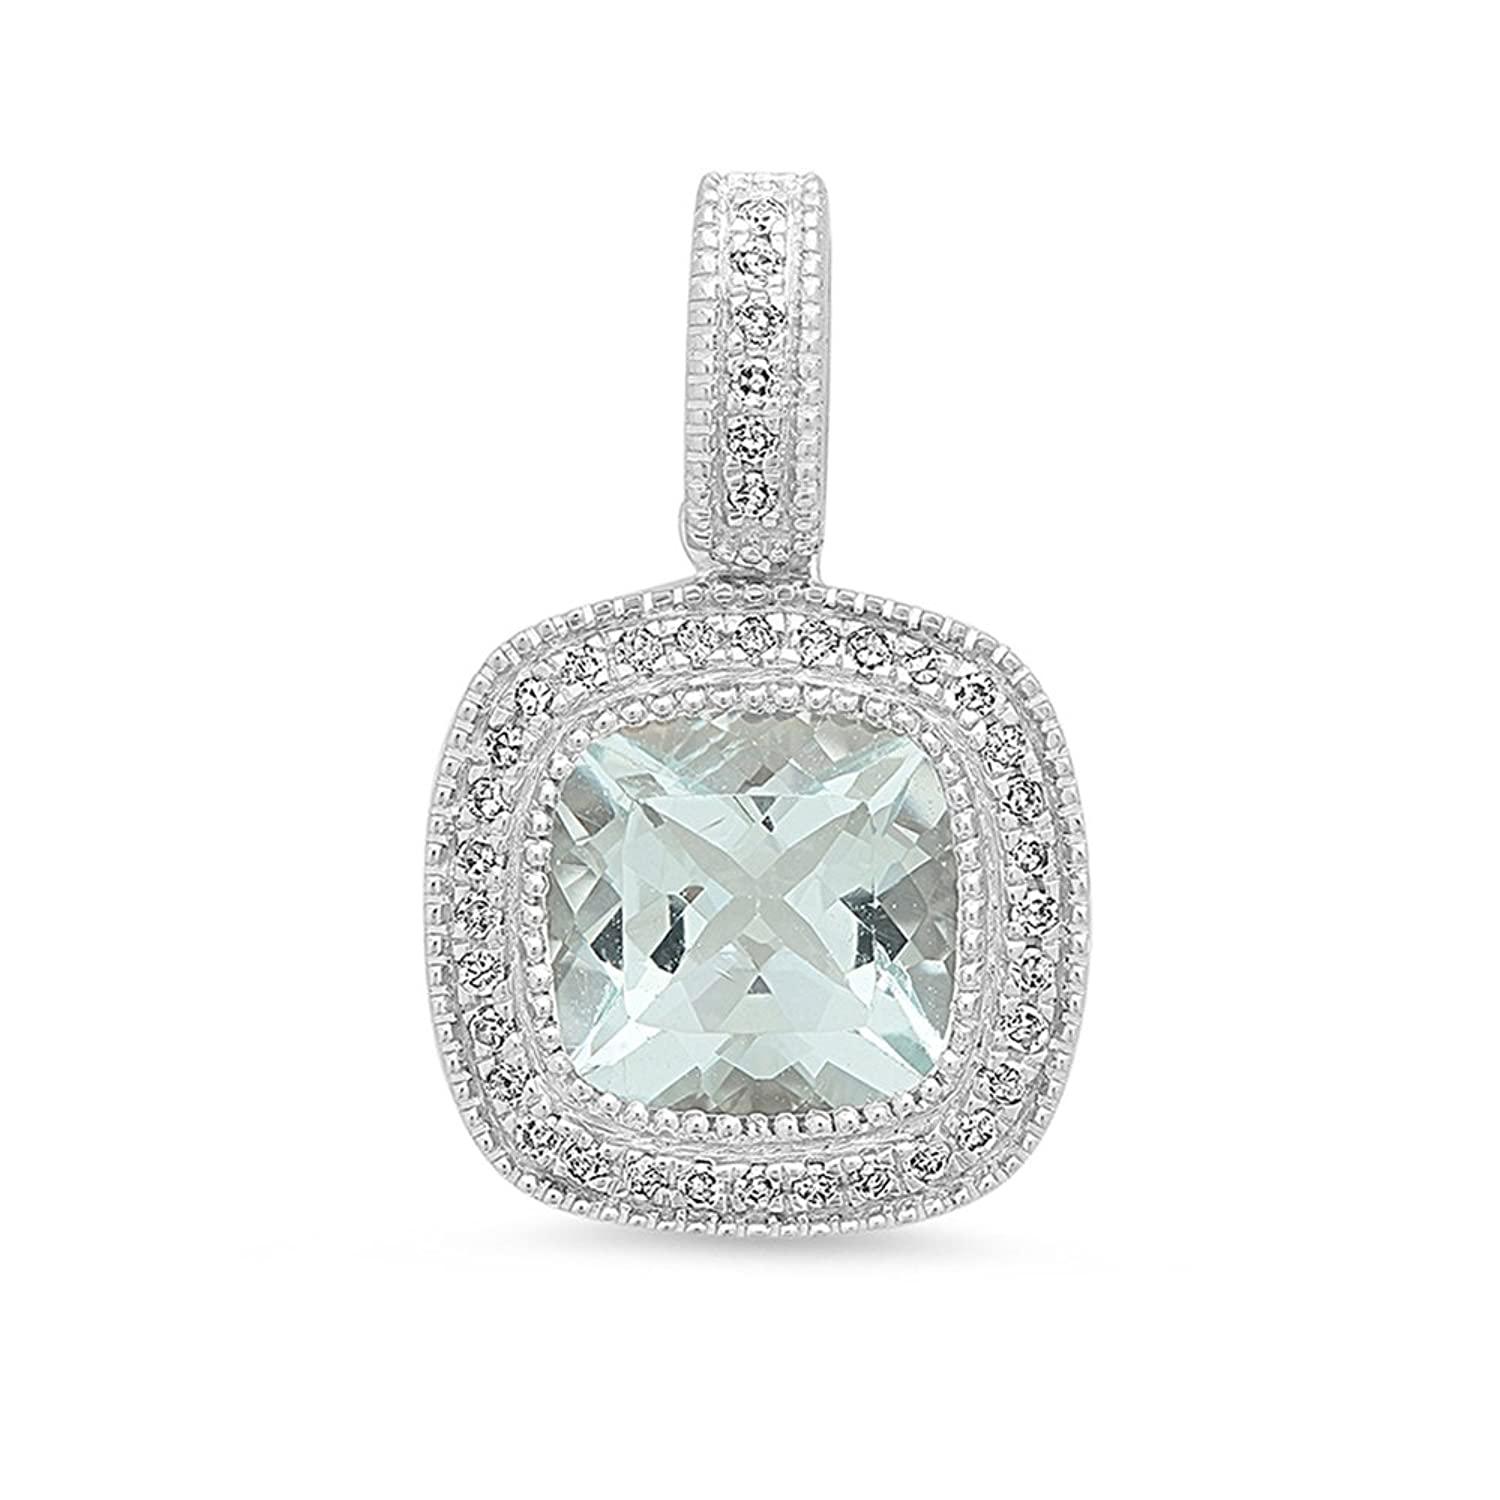 14K White Gold 7 MM Cushion Cut Ladies Halo Style Pendant (Silver Chain Included)